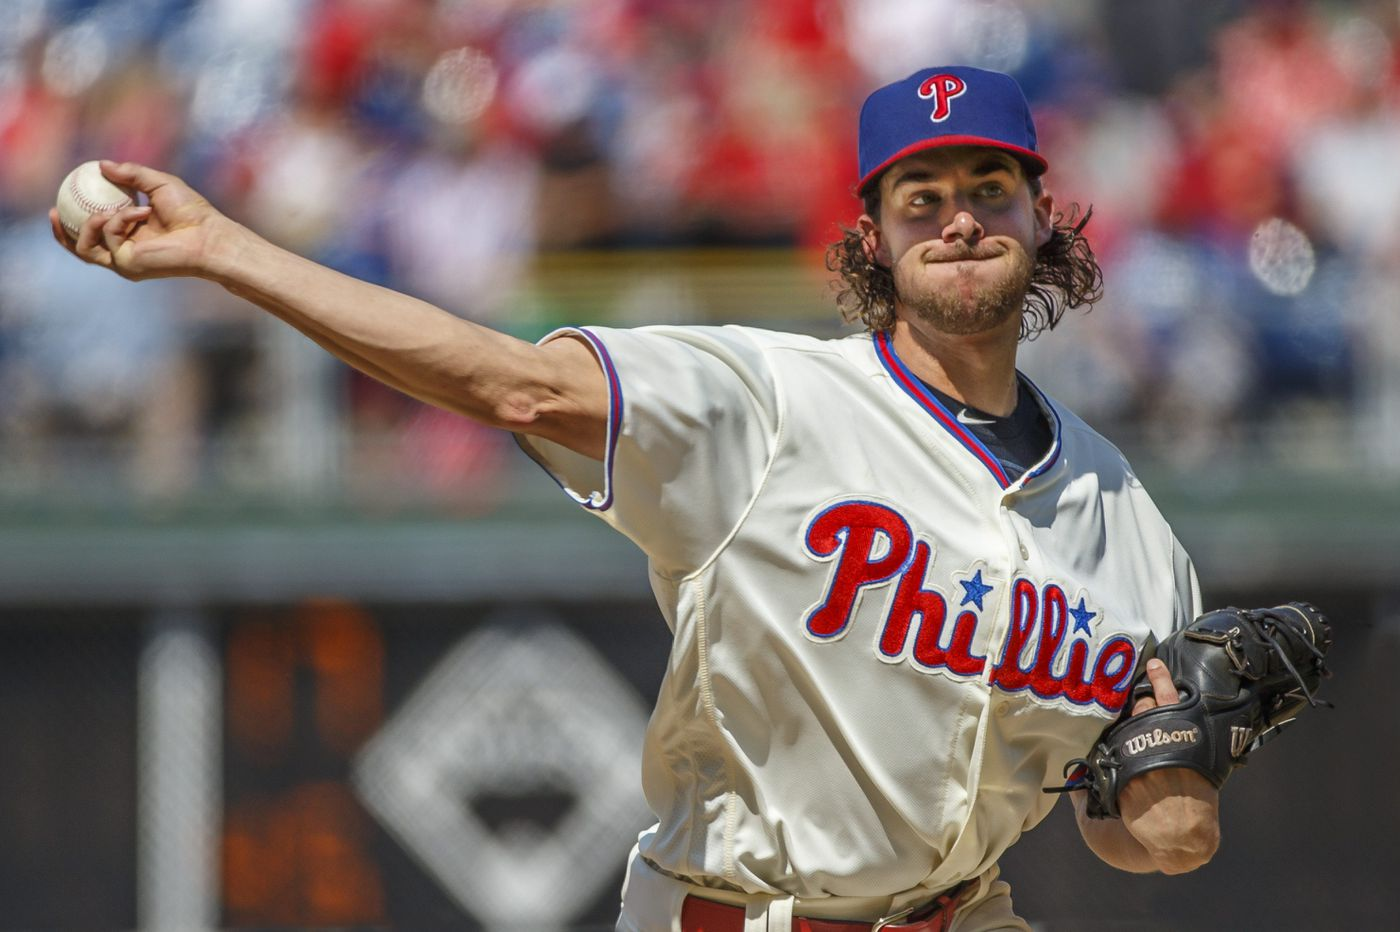 For Phillies ace Aaron Nola, reaching 200 innings will be a meaningful achievement